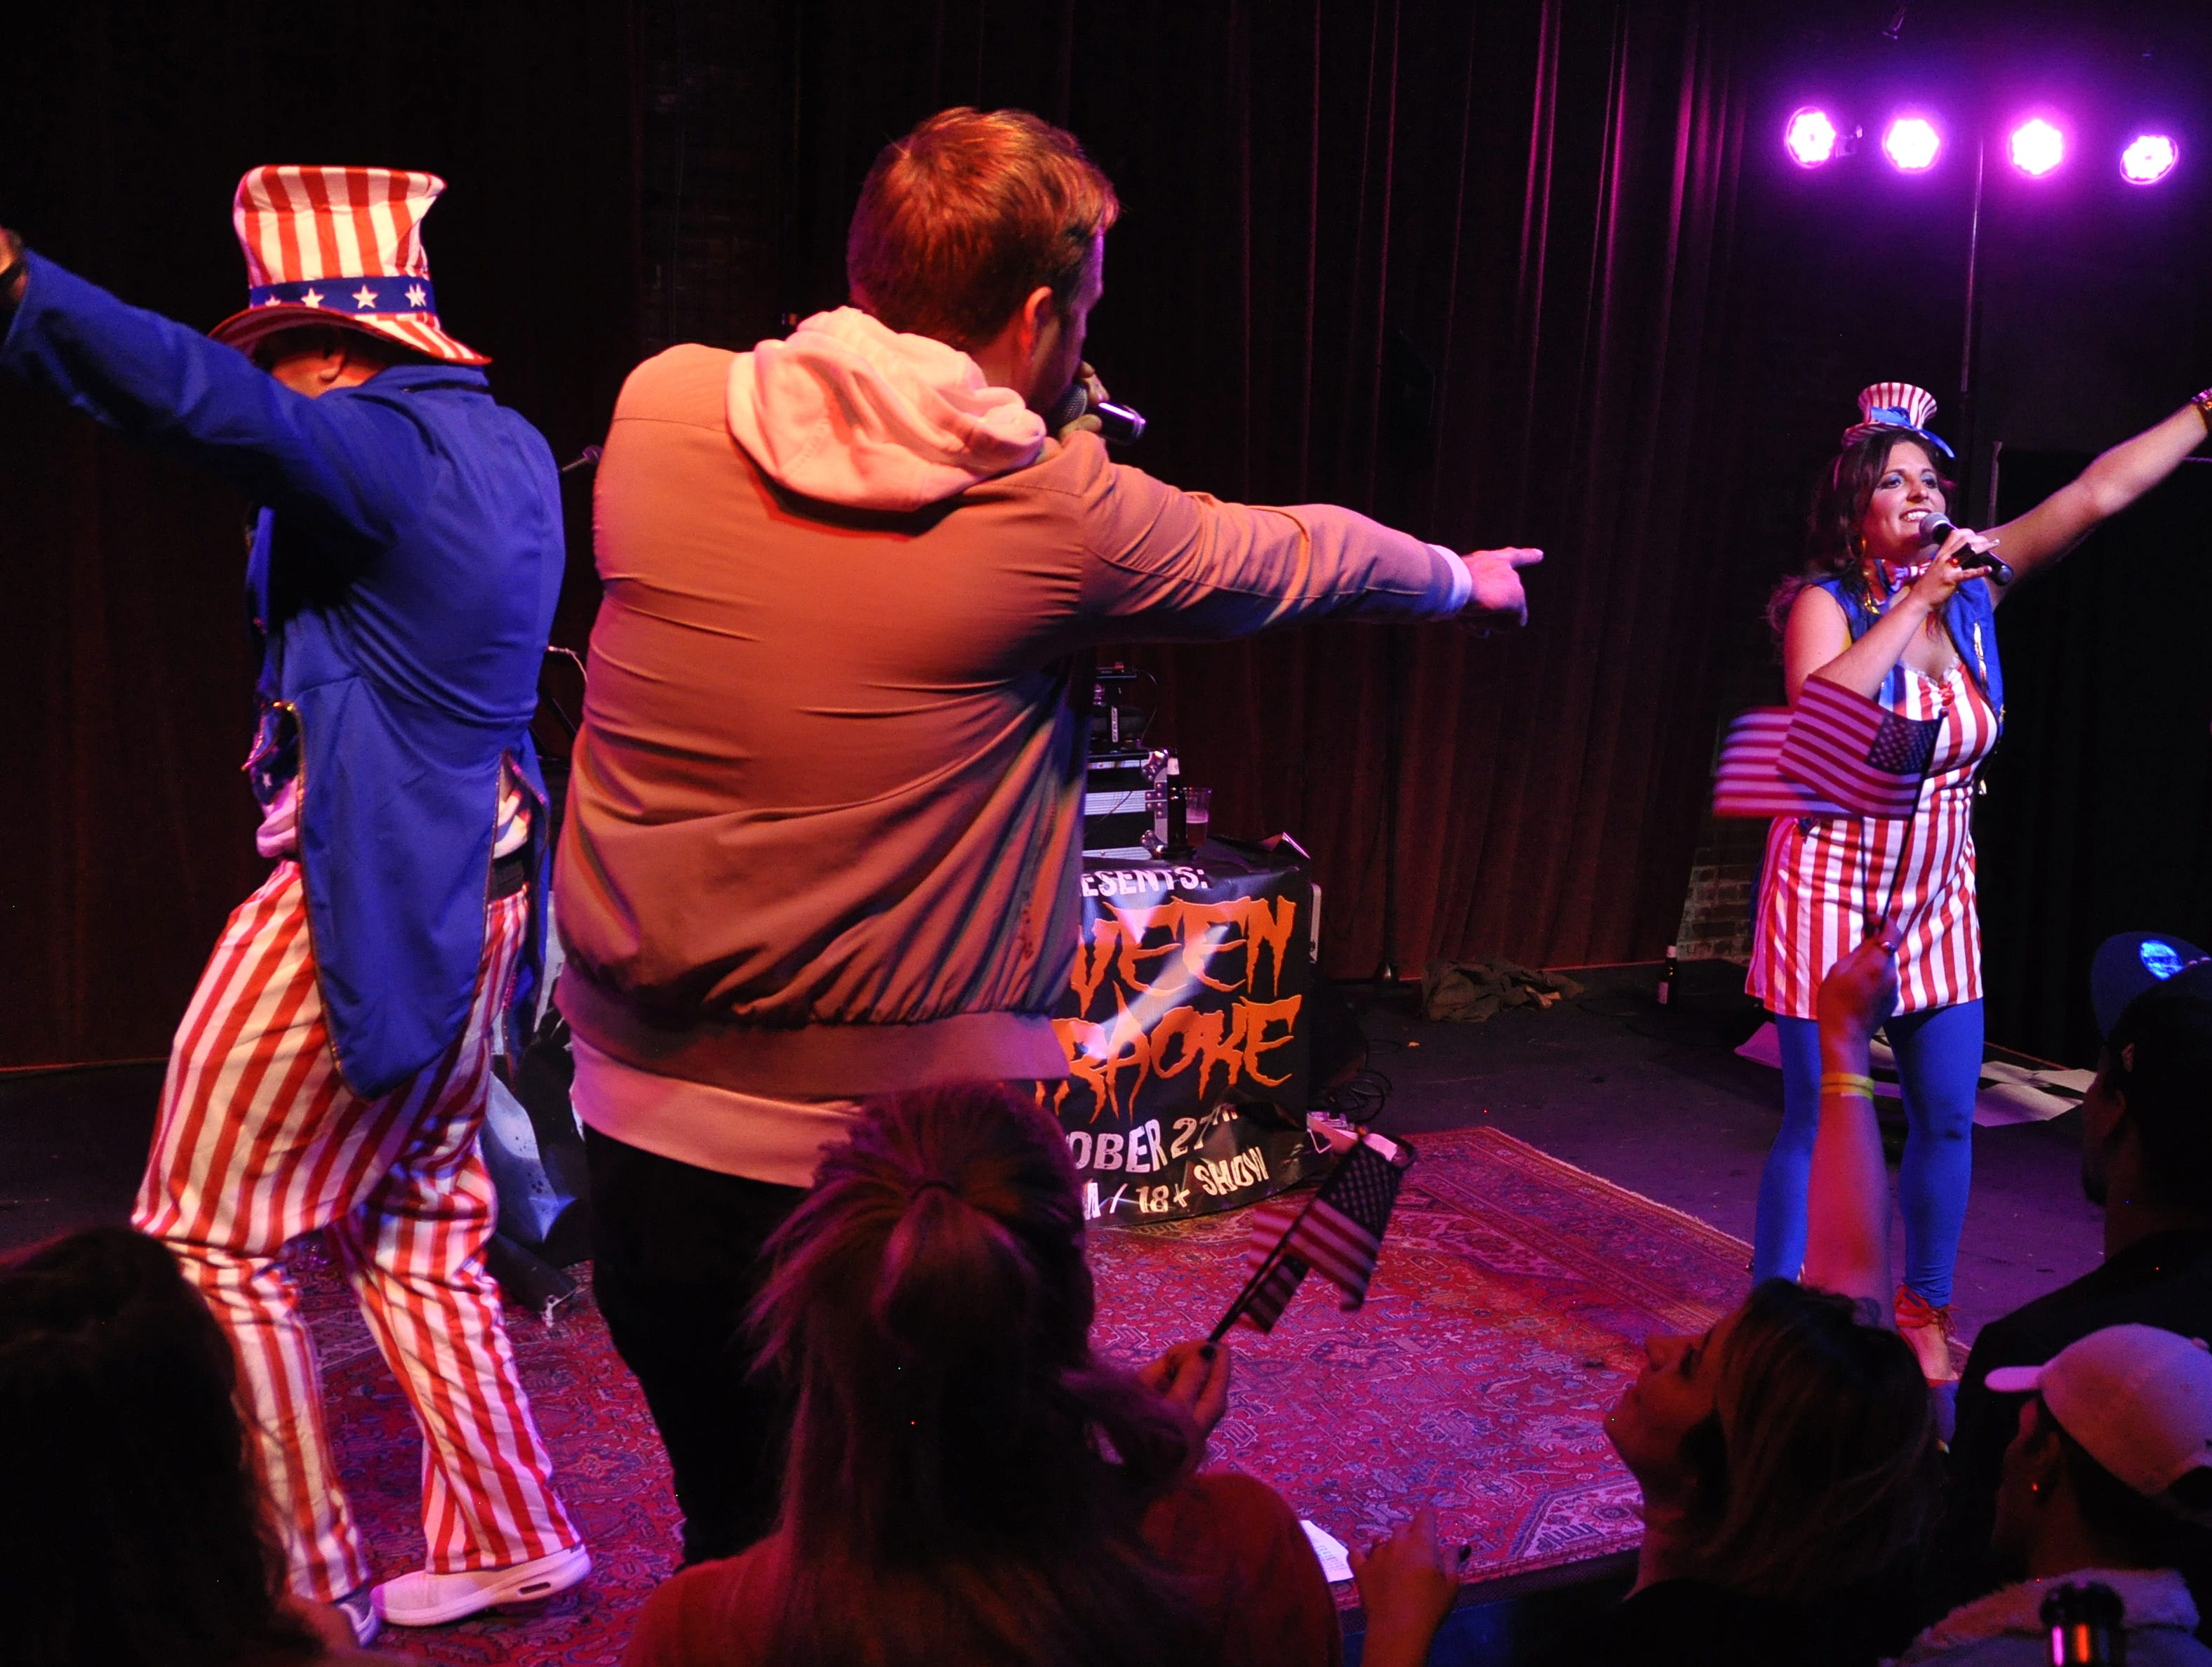 Elizabeth Hunstad and Matt Kuiper, far left, perform with Danny, left, and Wes Eisenhauer at the 10th Annual Halloween Rap Karaoke show at Icon Lounge Friday night. The event is was created by the Sioux Falls band Soulcrate.